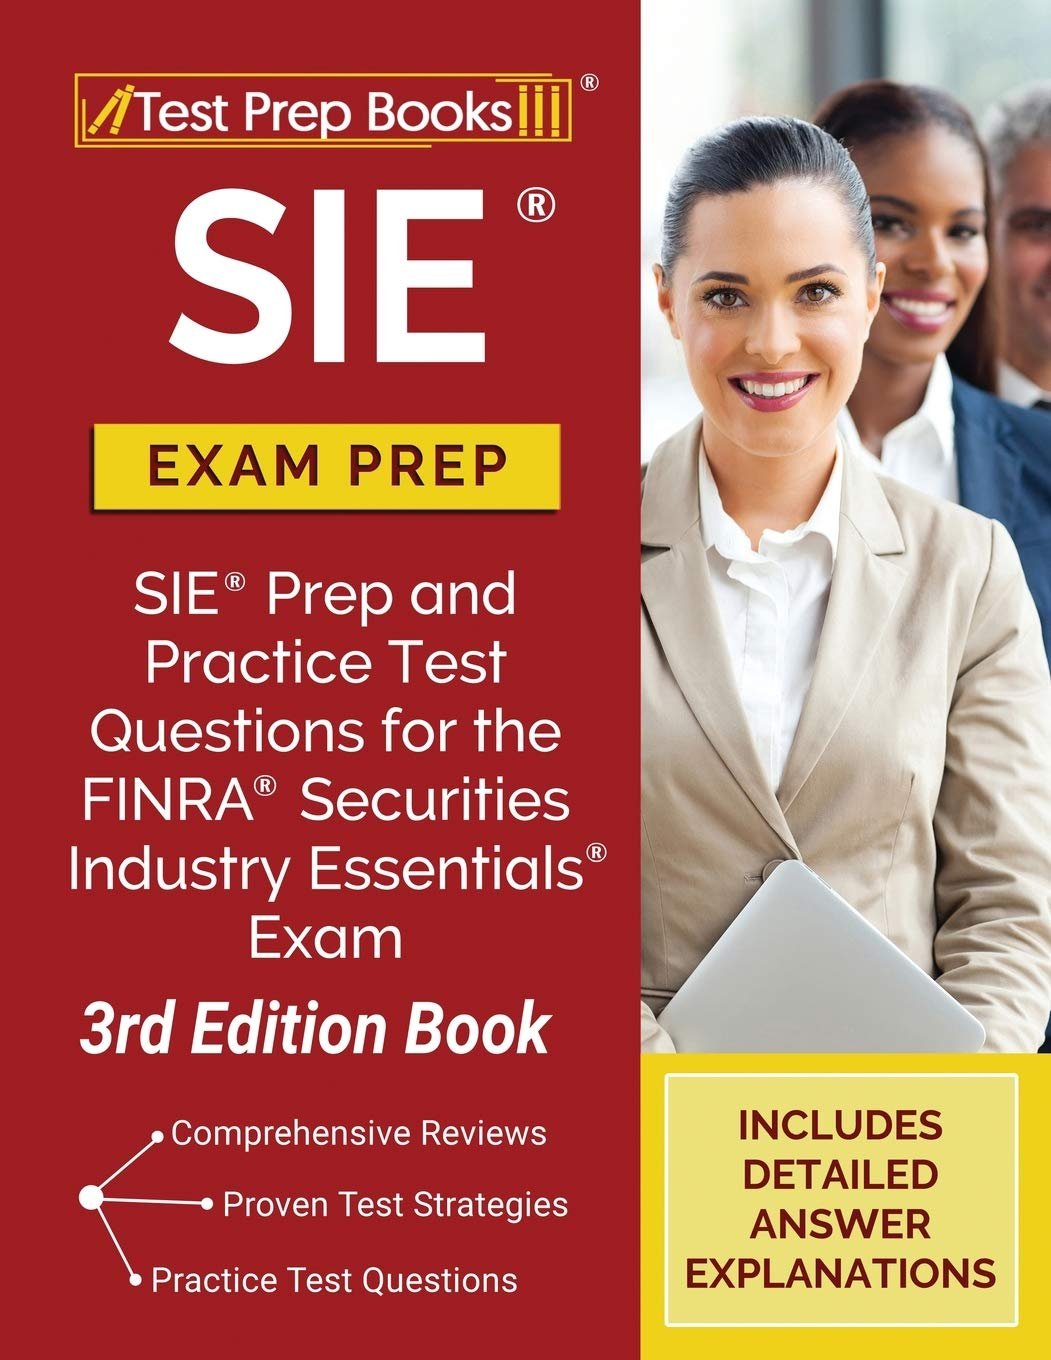 Download SIE Exam Prep: SIE Prep And Practice Test Questions For The FINRA Securities Industry Essentials Exam 3rd Edition Book 